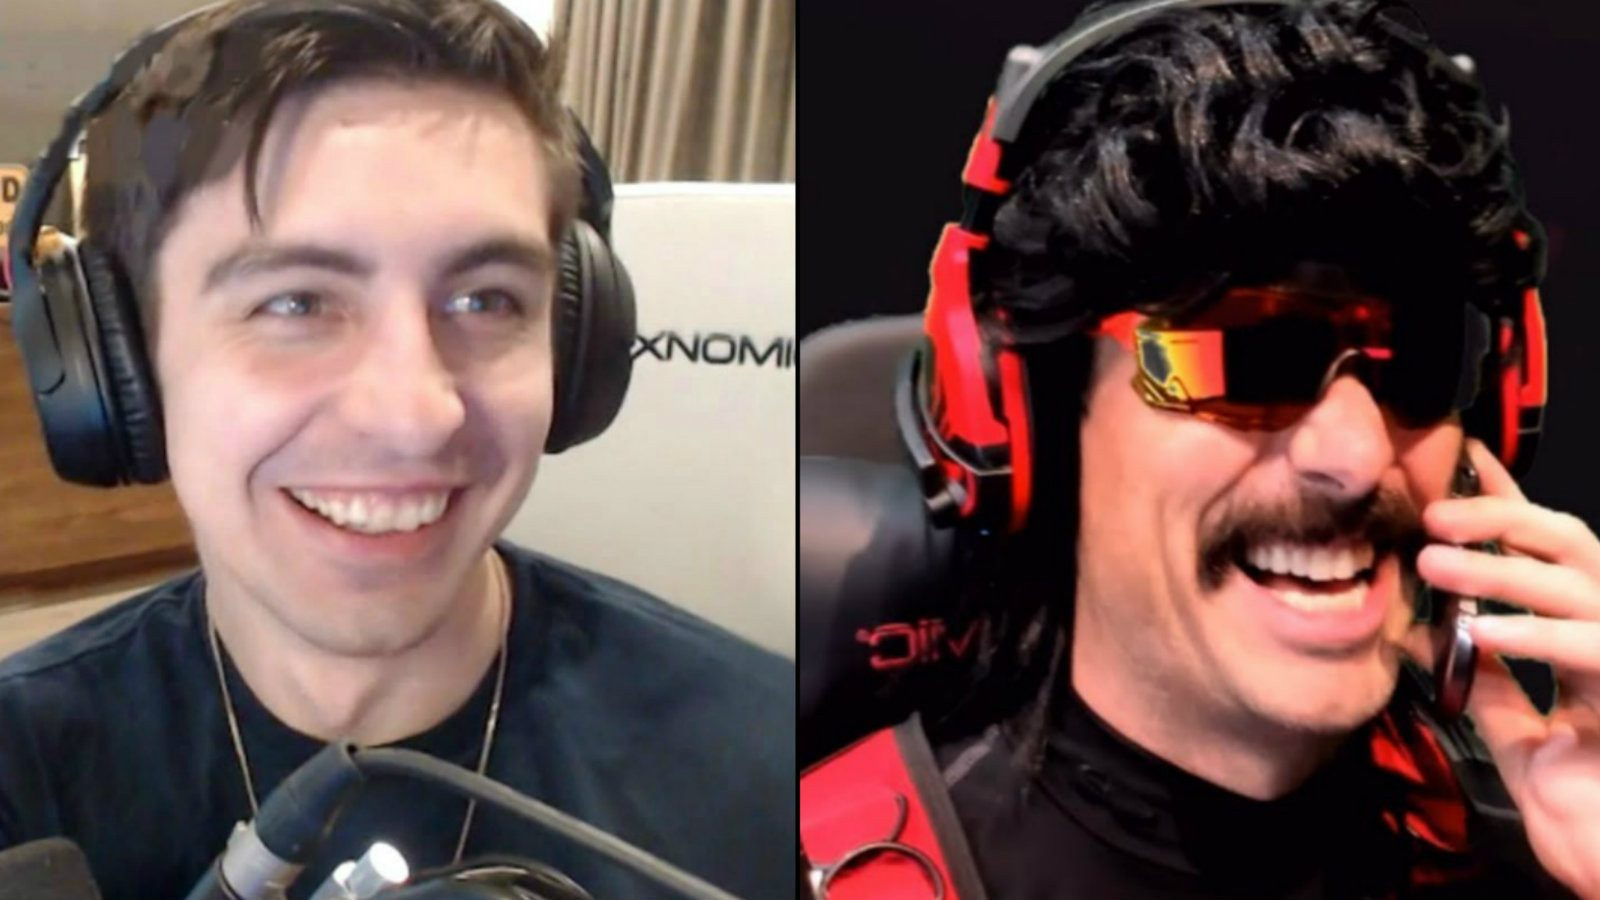 Shroud versus DrDisrespect. Who's at the TIPPY TOP?